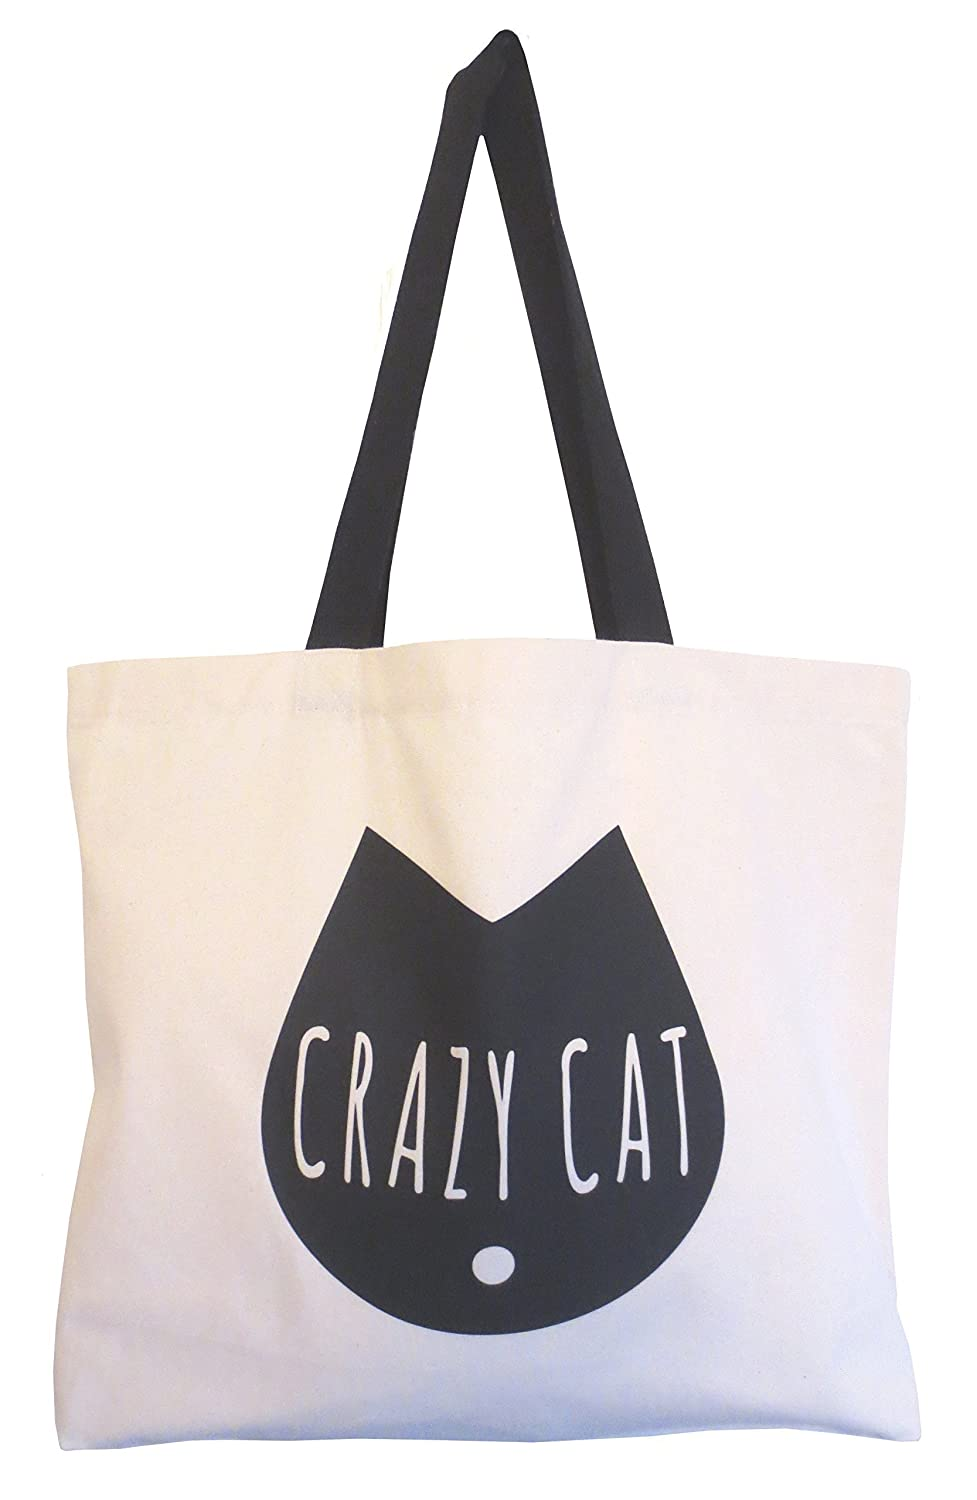 74c8a76701 Amazon.com: Cat Tote Bag, Crazy Cat Tote Bag, Weekend Tote, Cat Lovers Tote,  Canvas Shopper, Typography Cat Design, Cool Cat Bag, Shopping Bag: Handmade